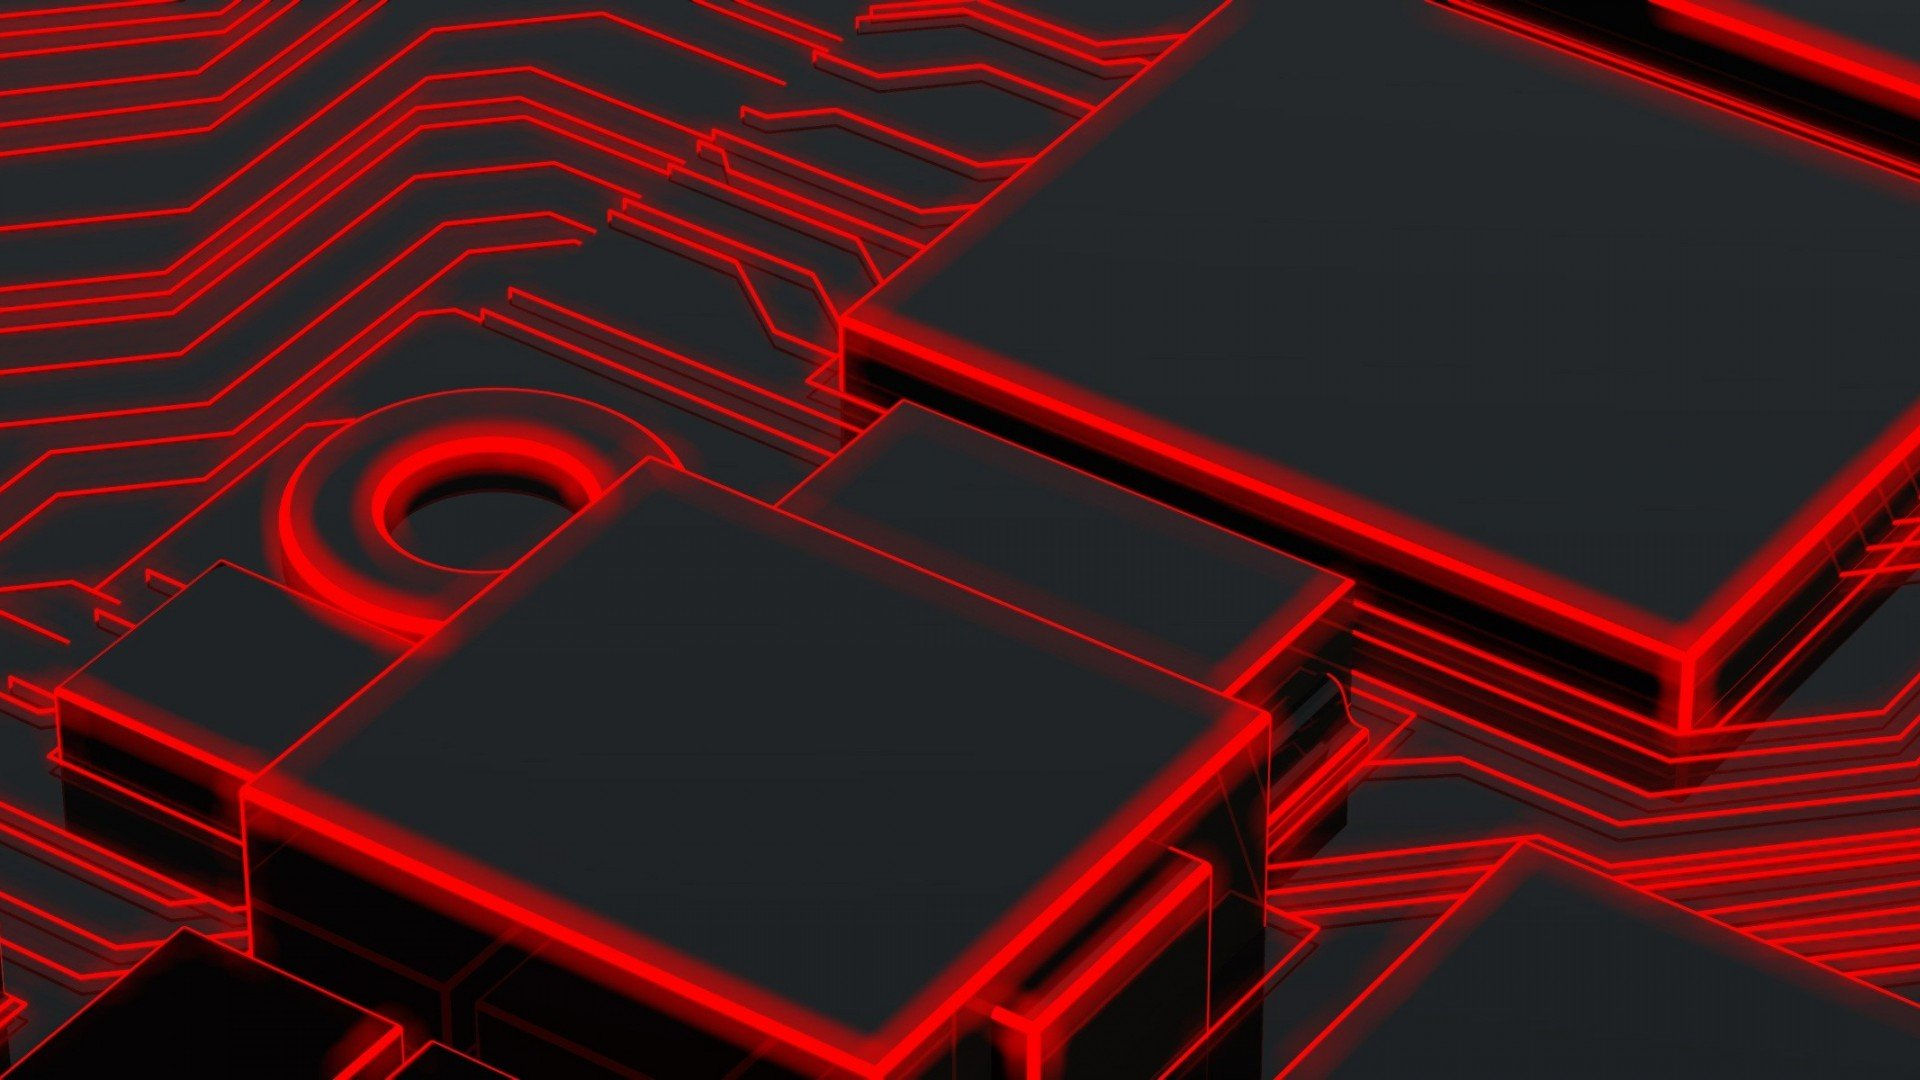 Pc gaming background